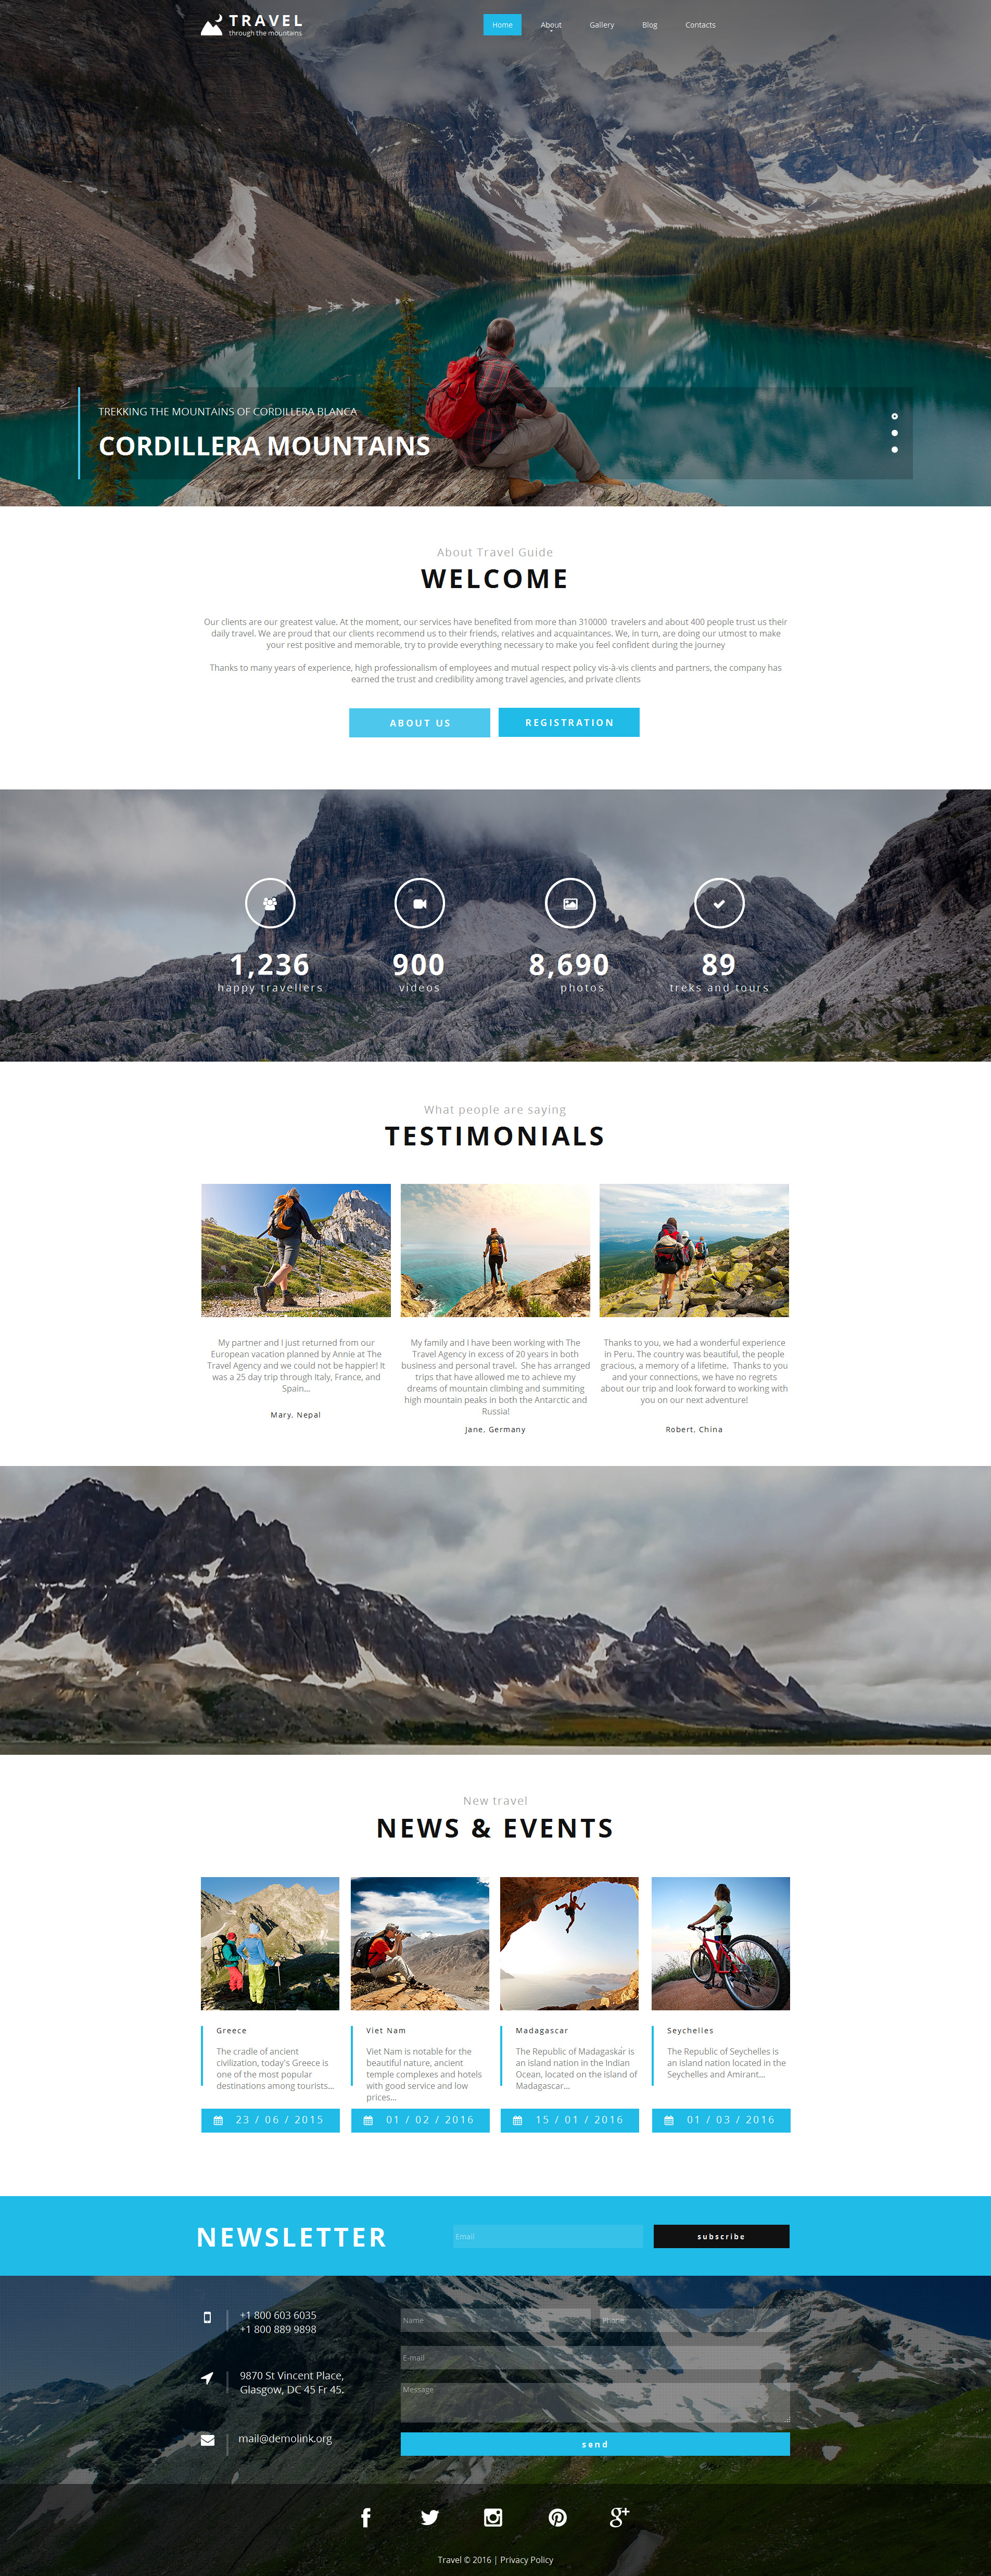 Premium Moto CMS HTML Template over Reisbureau №58474 - screenshot